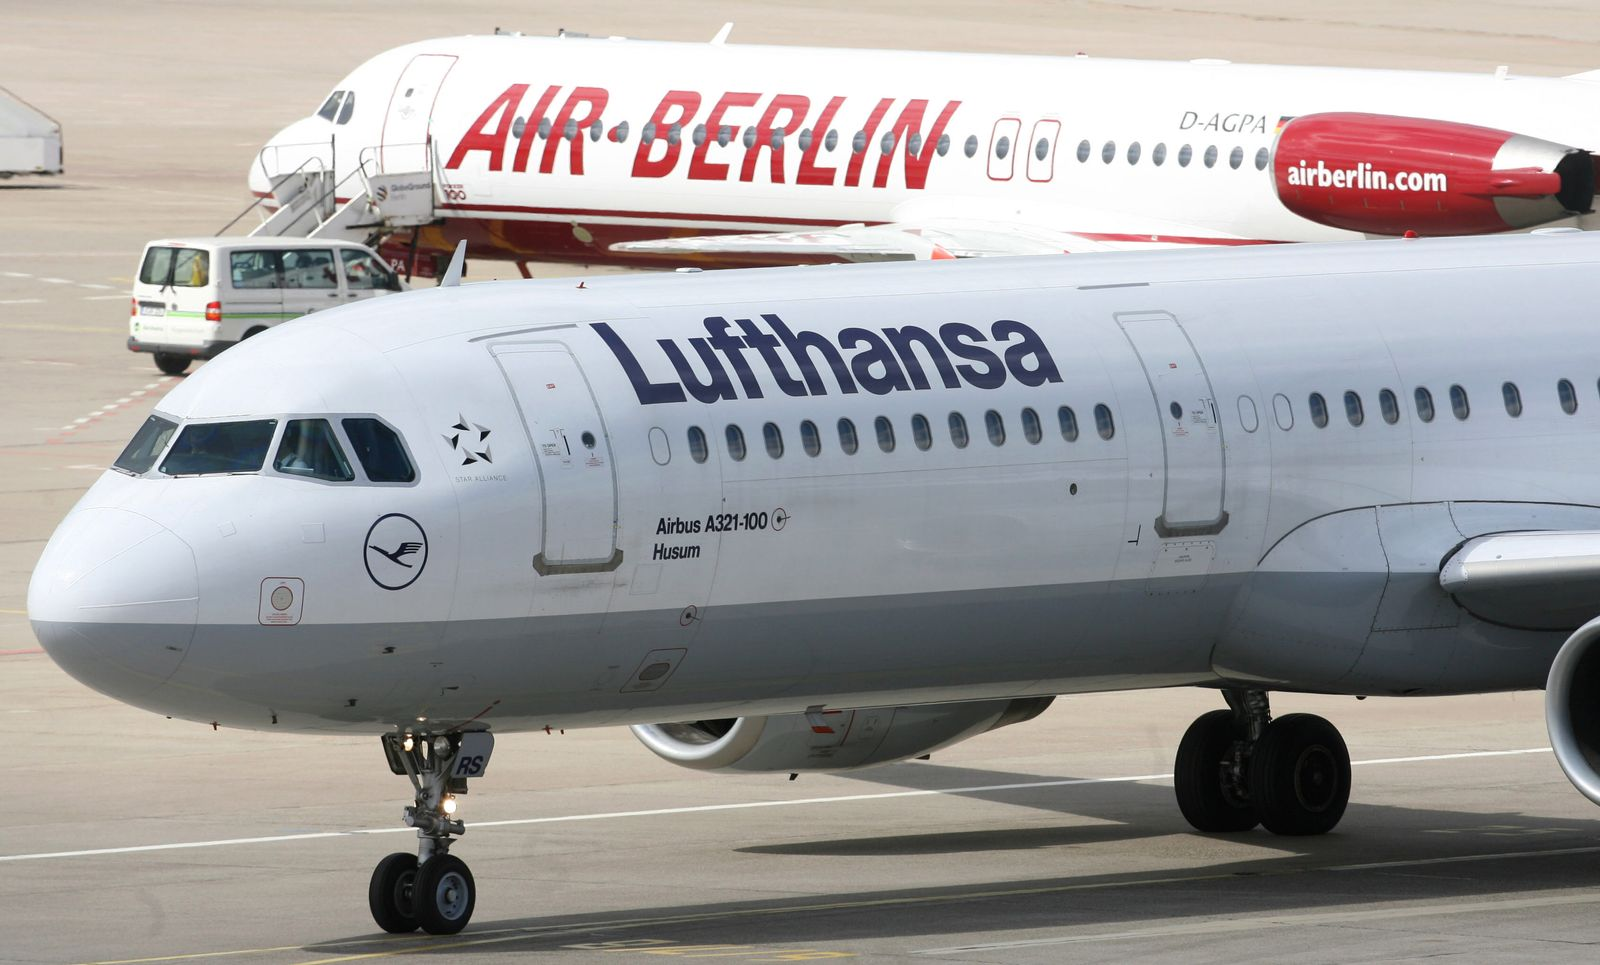 Air Berlin / Lufthansa